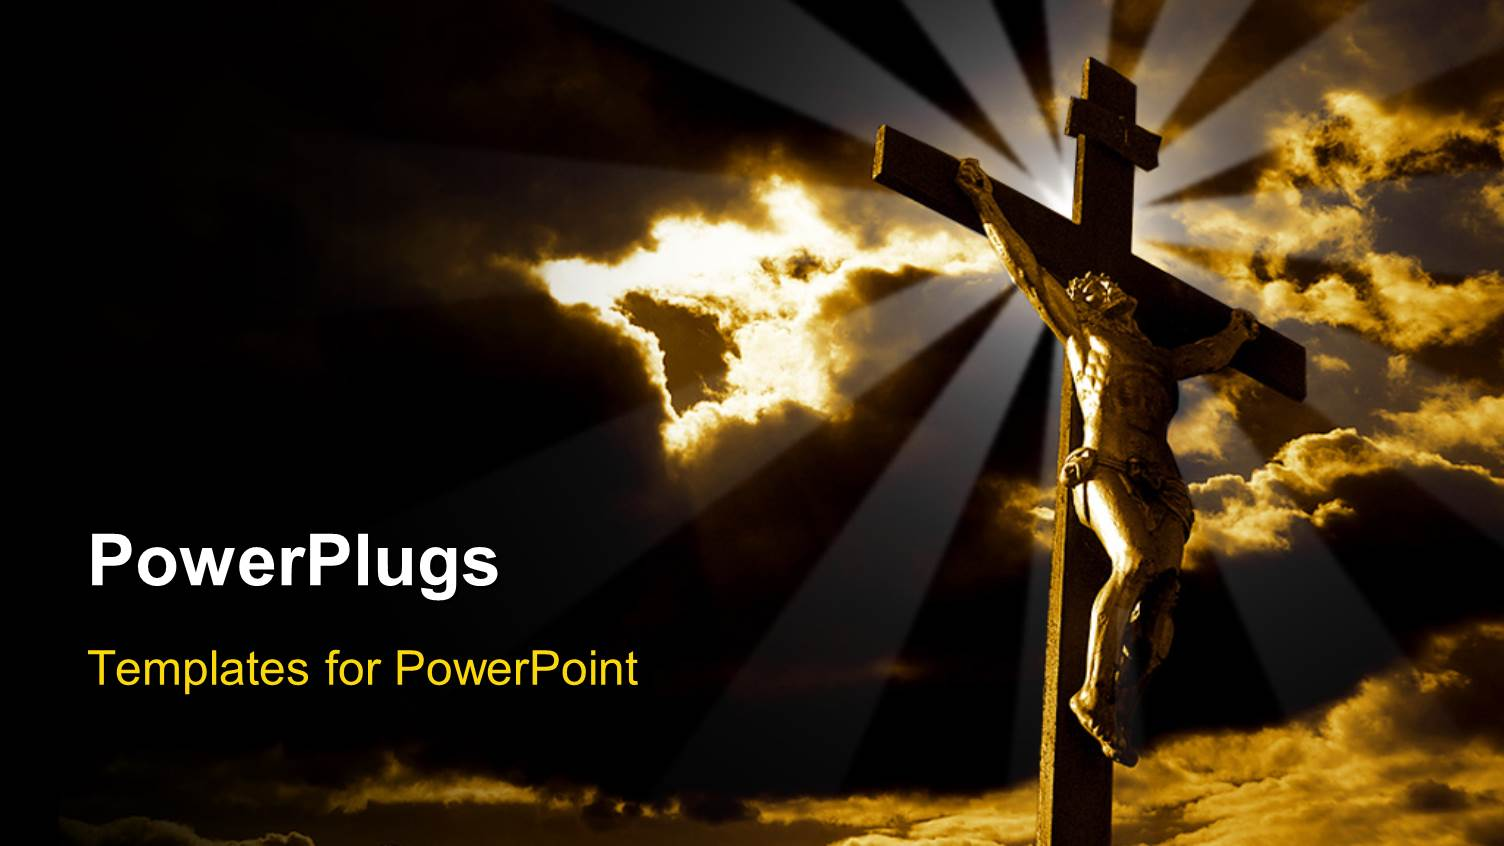 Jesus powerpoint templates ppt themes with jesus backgrounds elegant presentation theme enhanced with the crucifixion of jesus with clouds in the background template size toneelgroepblik Gallery